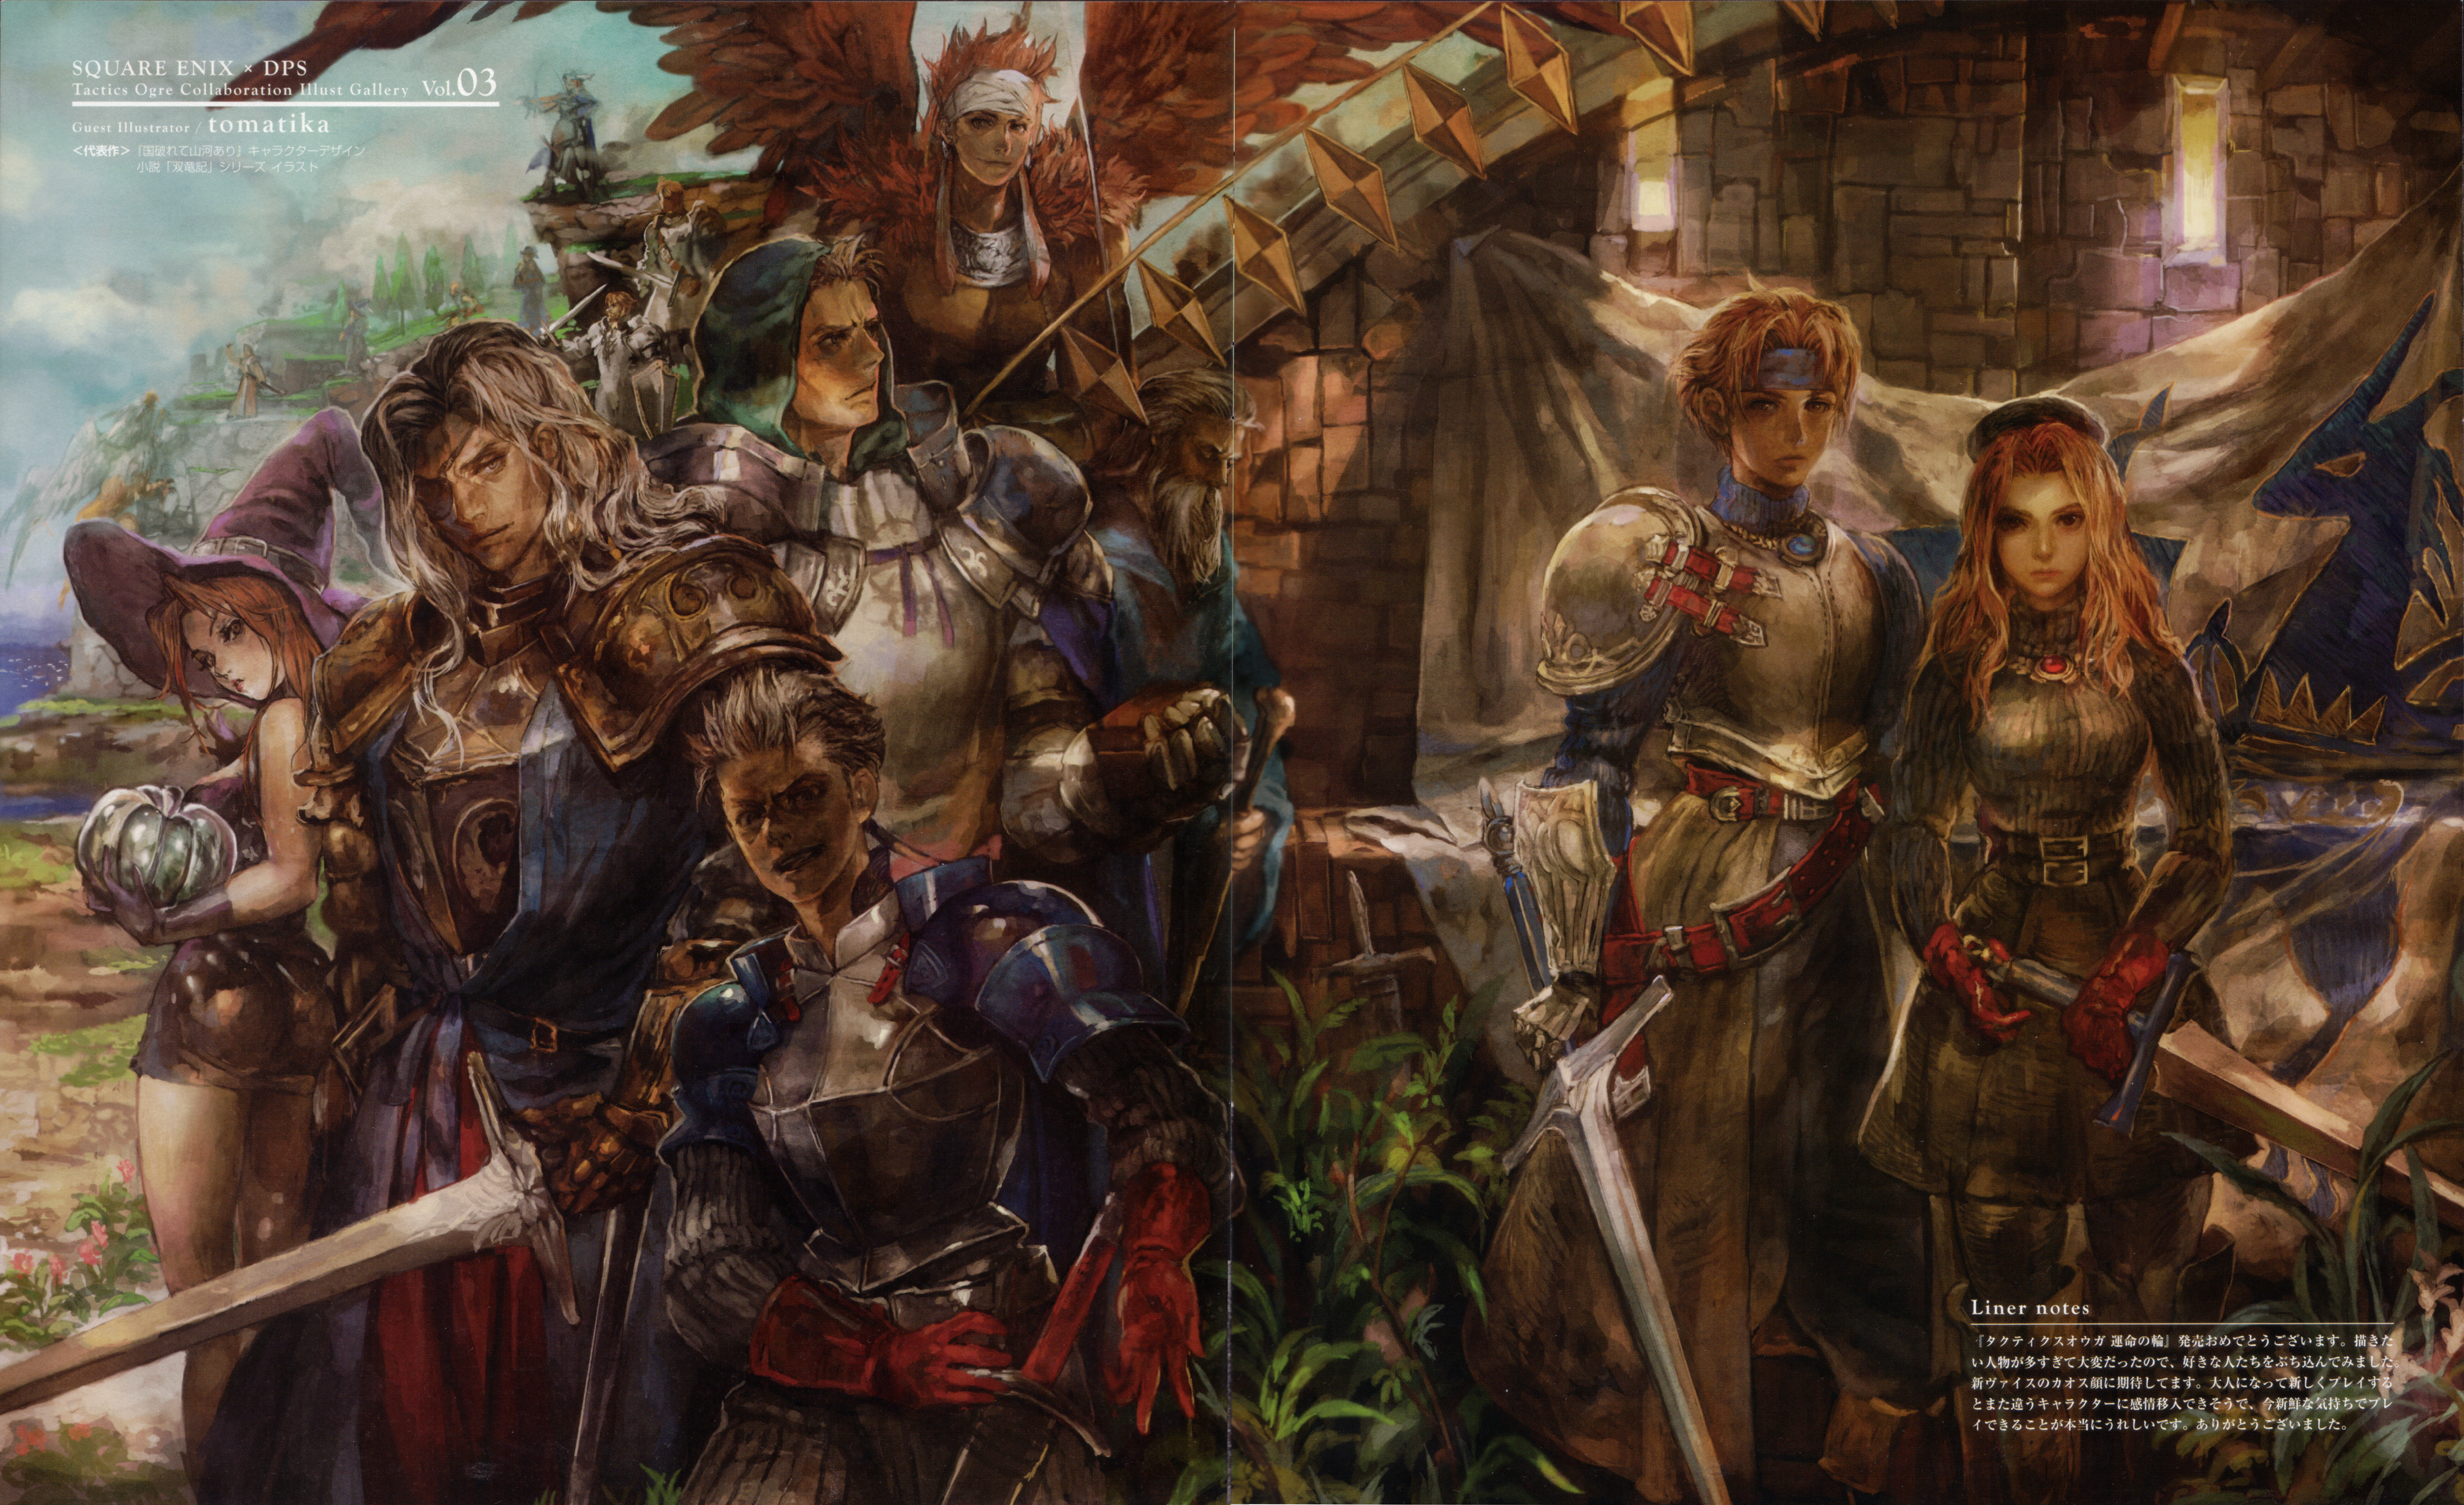 MY NEW FUCKING WALLPAPER ITT - Tactics Ogre Forums